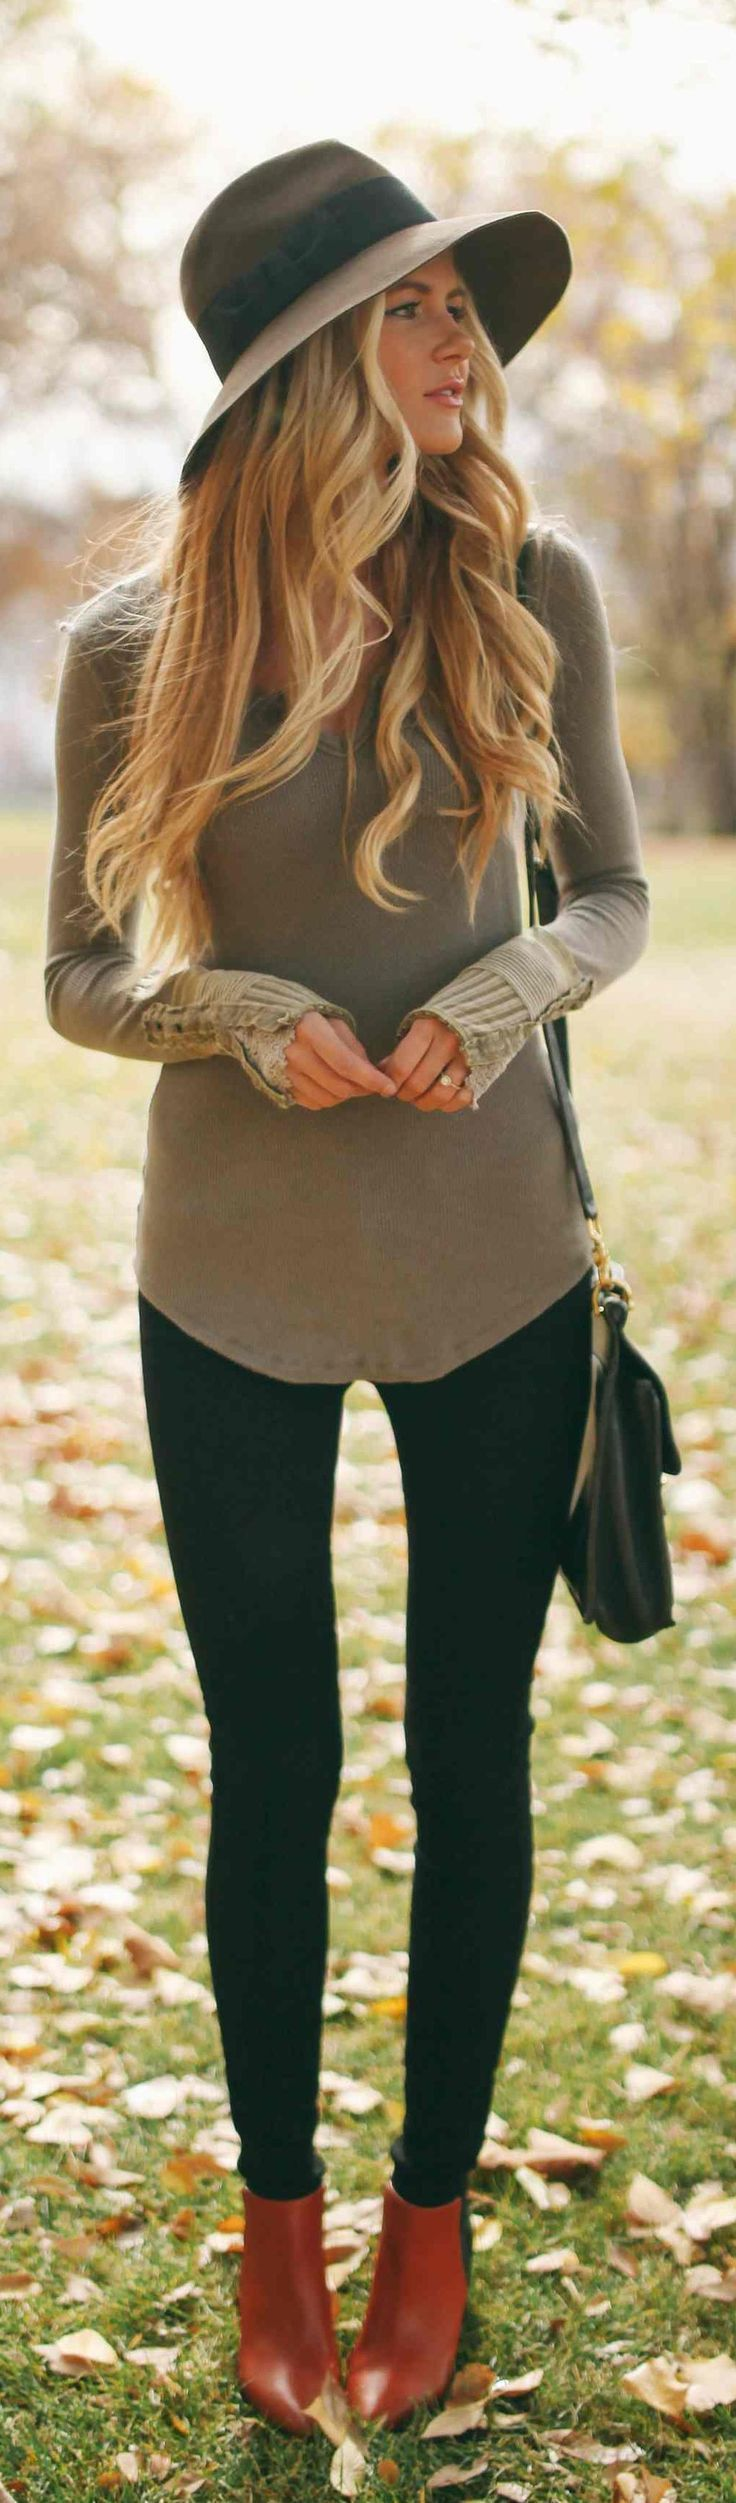 Fall outfit. Free people top with <3 from JDzigner www.jdzigner.com